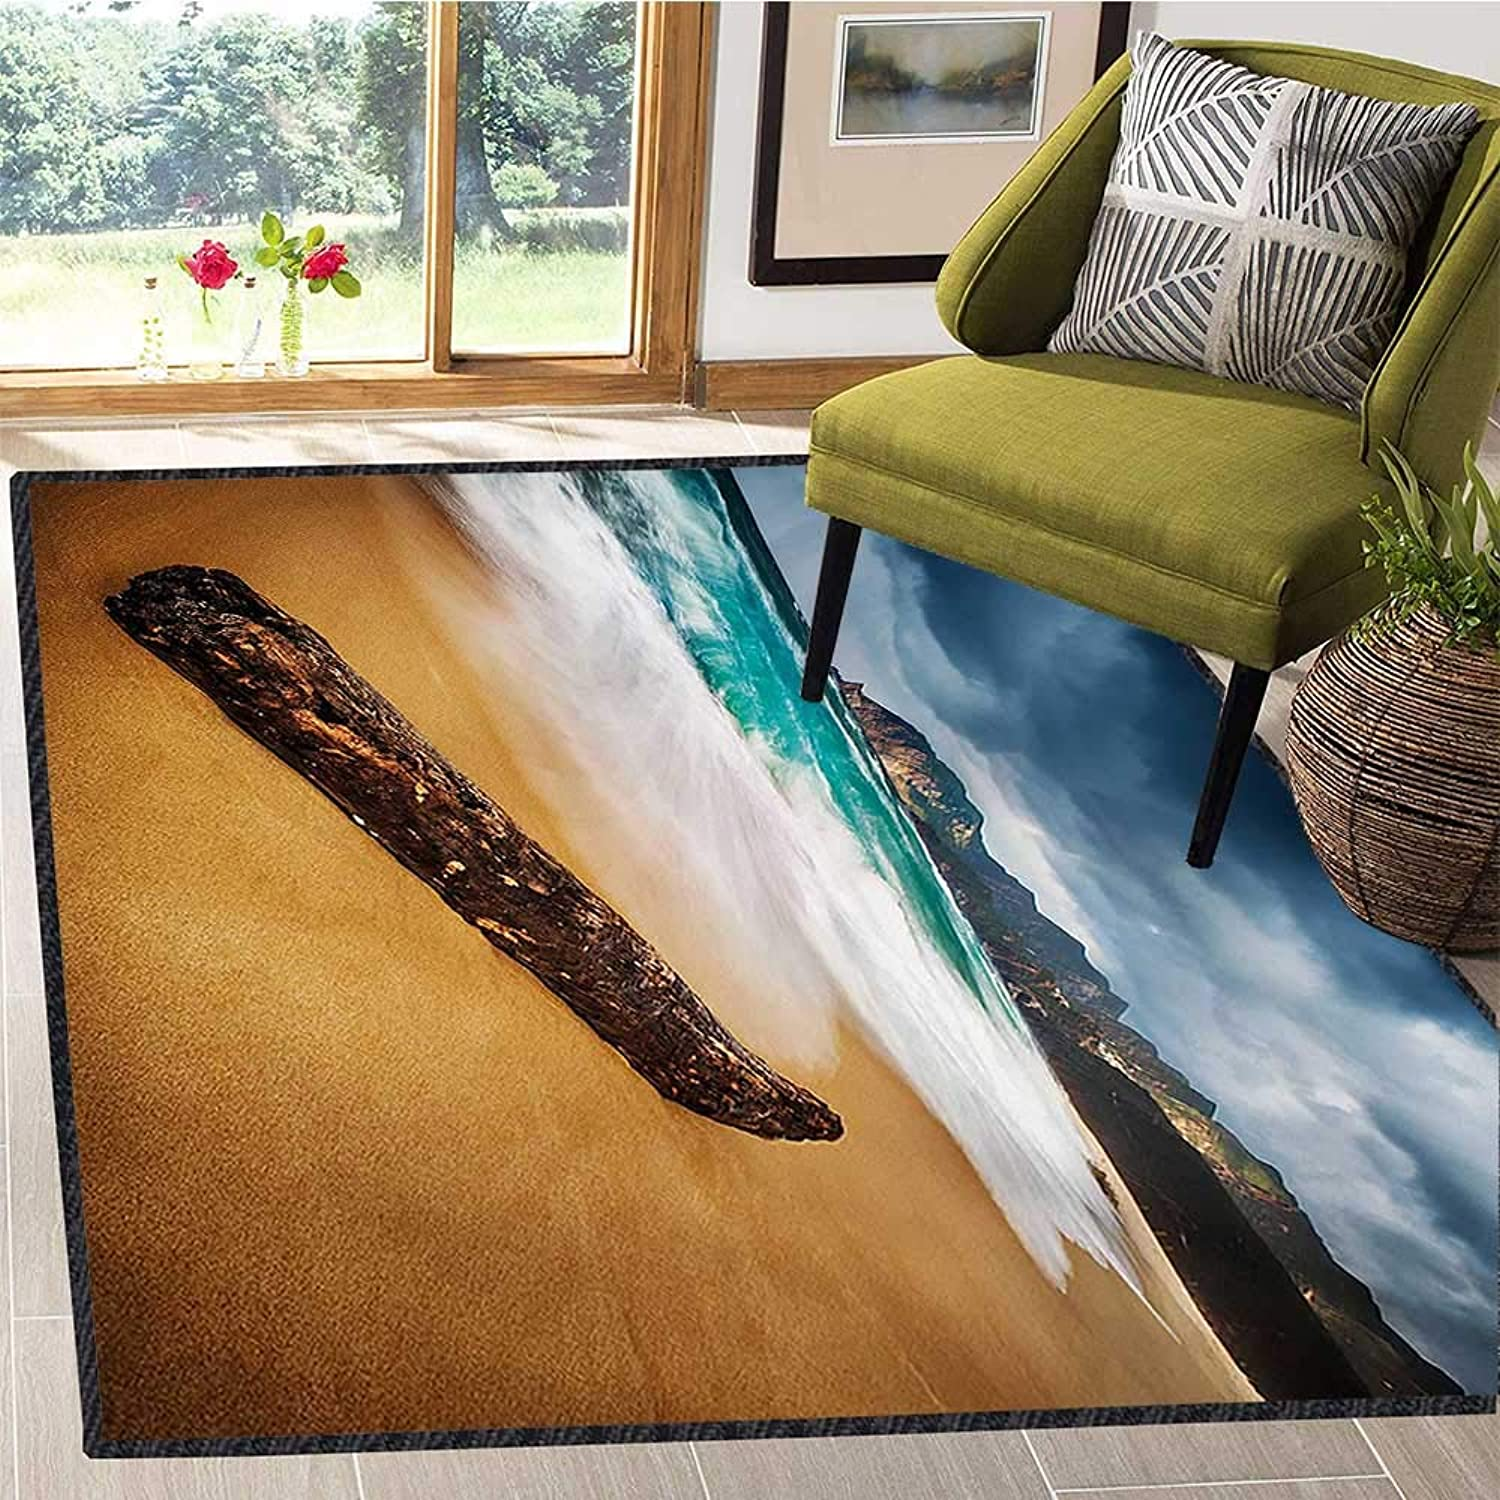 Driftwood, Floor Mat for Kids, Seascape Theme with Old Piece of Tree in The Beach with Stormy Weather Print, Door Mats for Inside Non Slip Backing 5x7 Ft bluee and Ginger